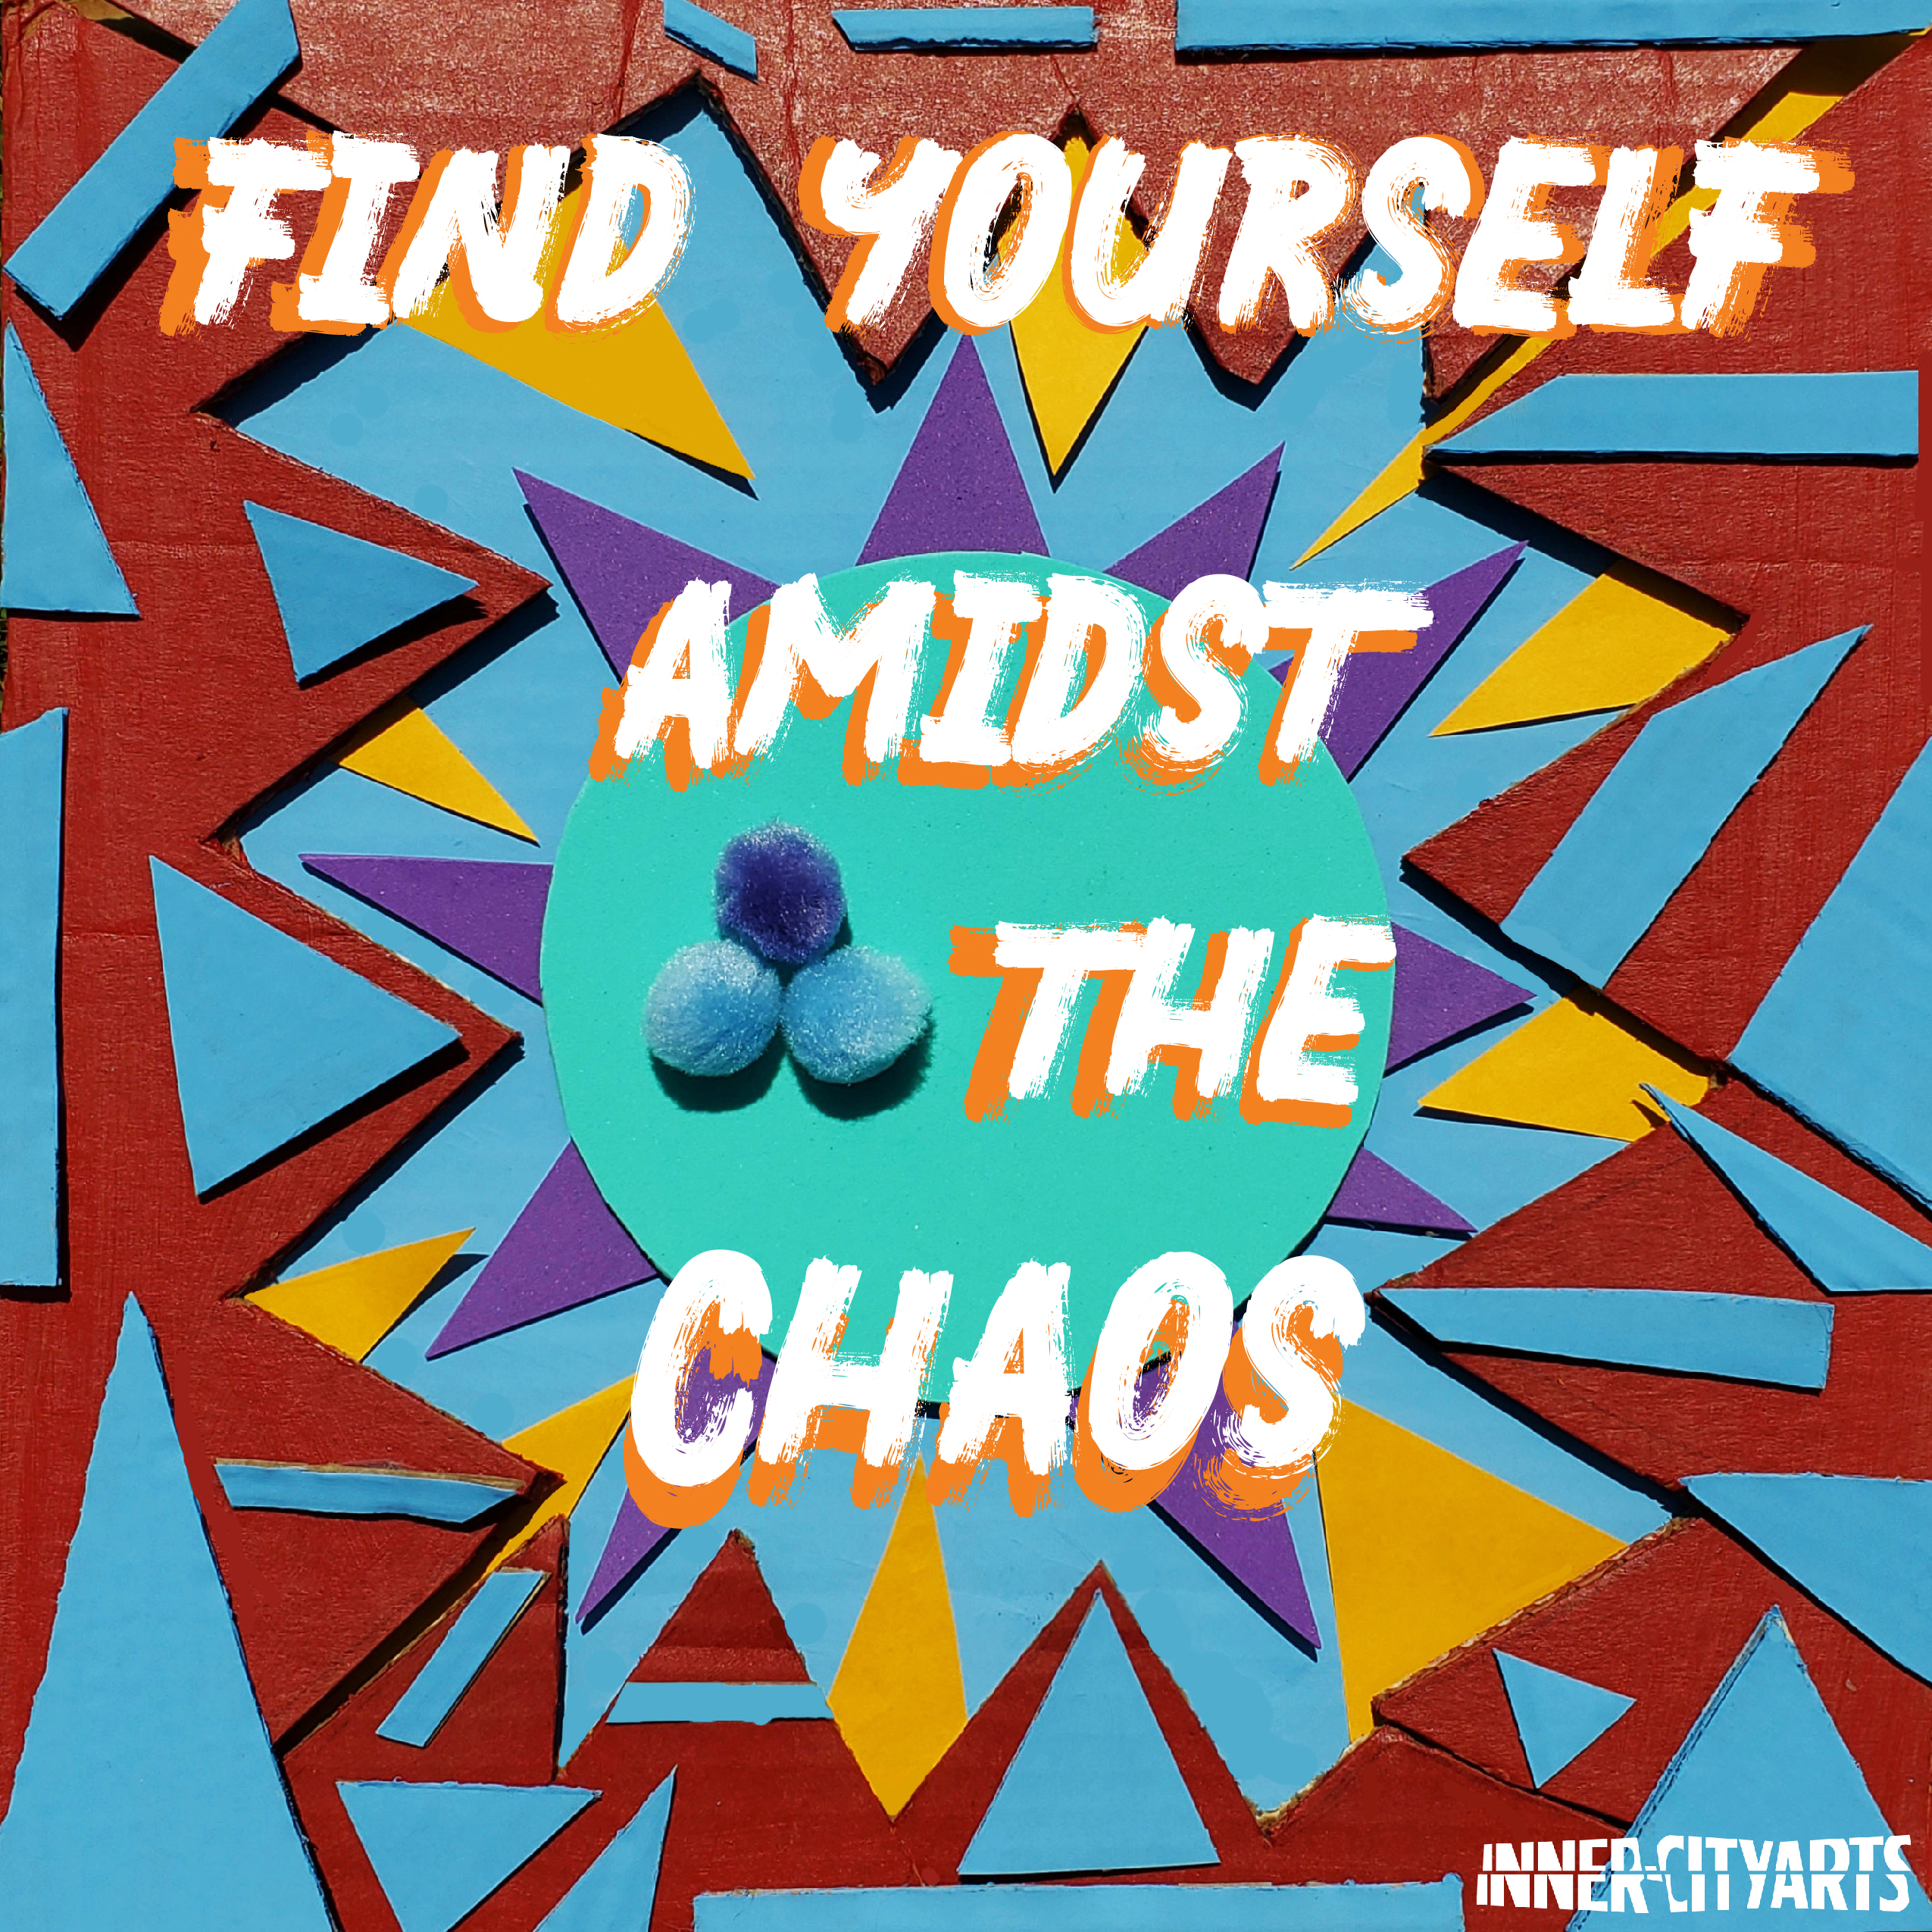 SOCIAL_PSA_AnxietyandDepression_AmidstChaos_1x1_FINAL_logo